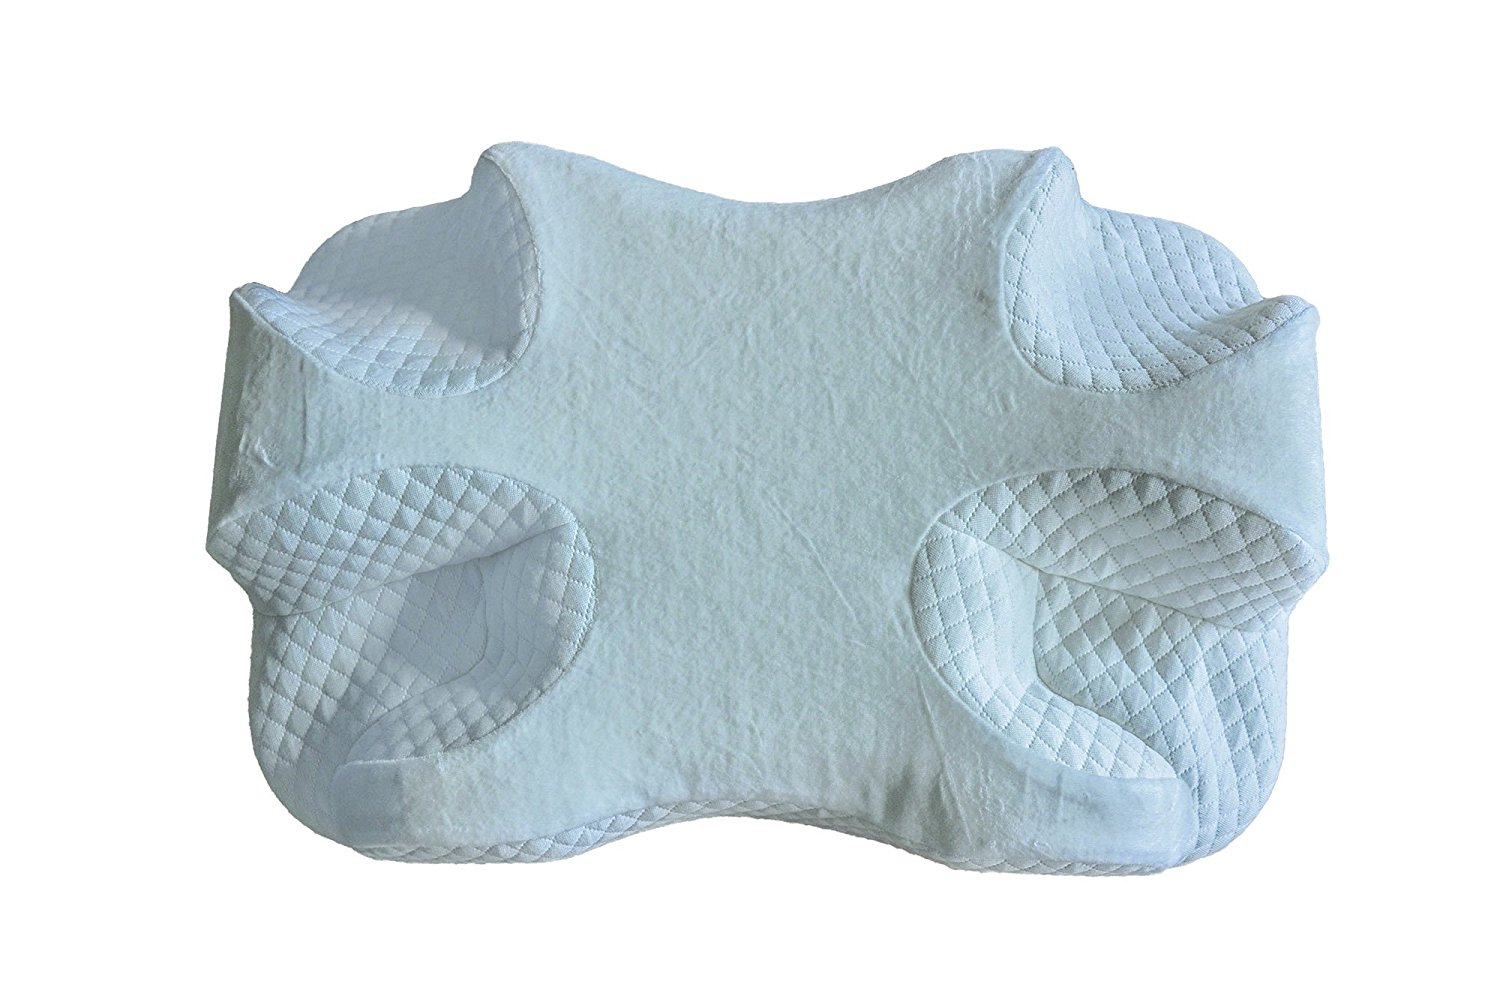 EnduriMed Contour CPAP Pillow